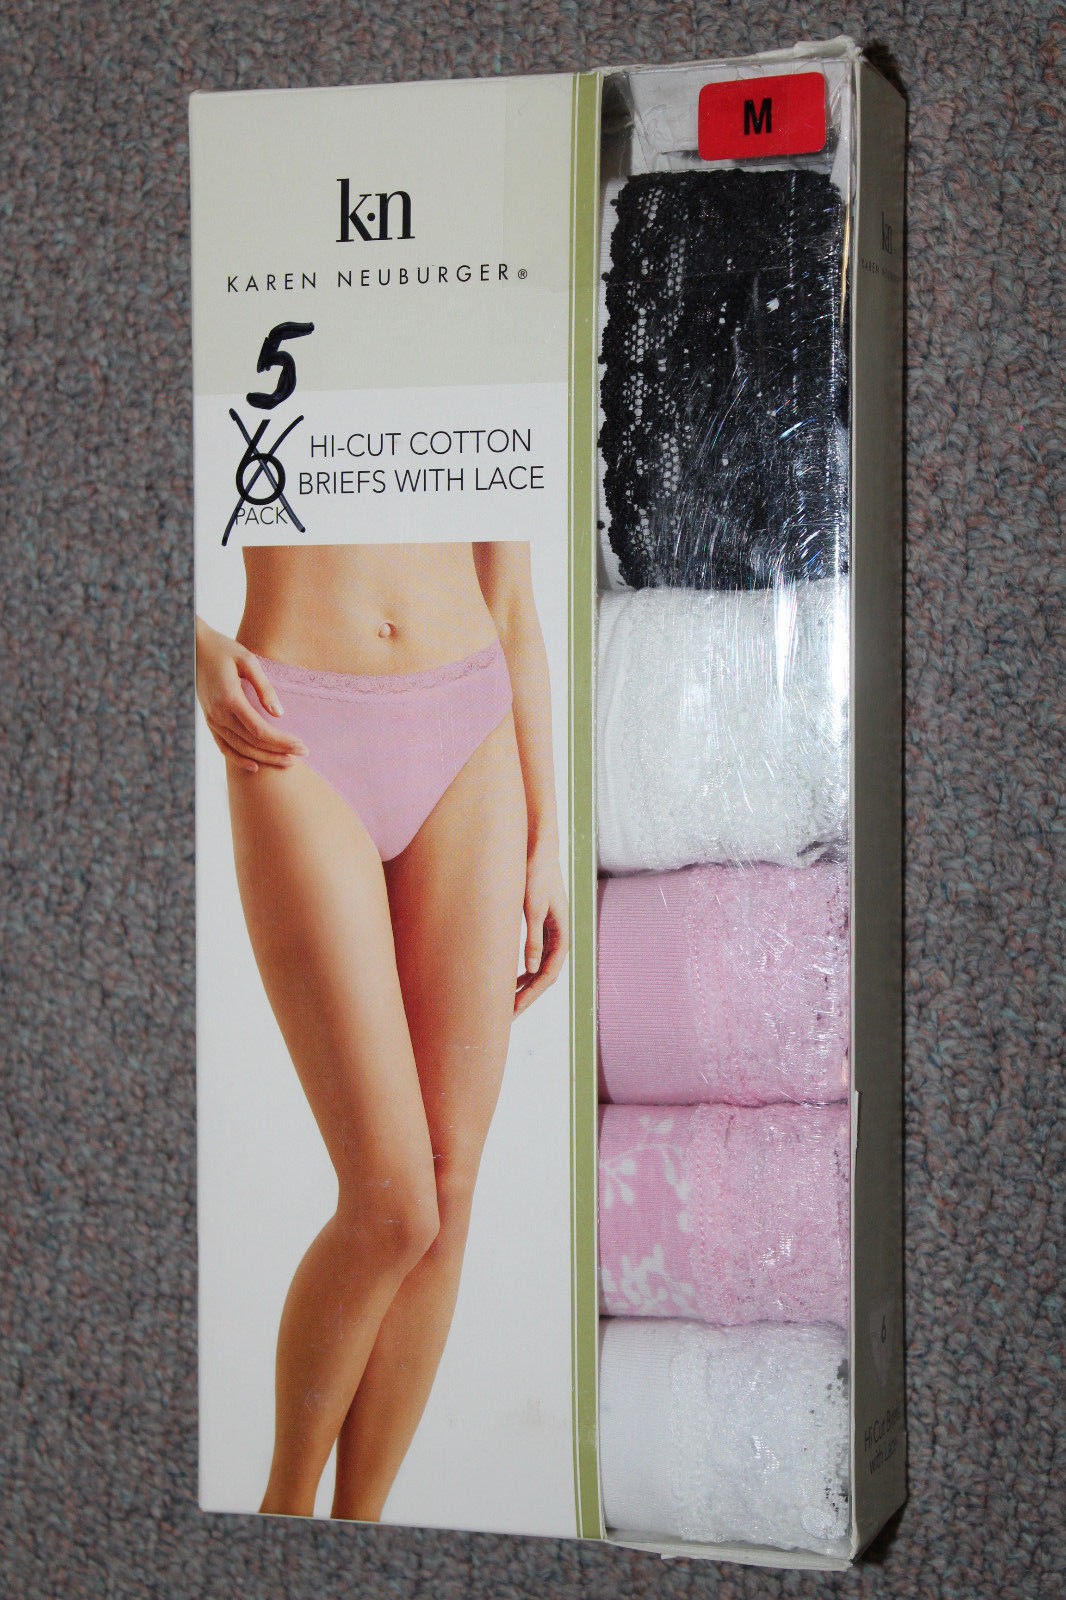 95545e20638  NEW Karen Neuburger 5 pair pack Hi-Cut Briefs with Lace M Medium  1134